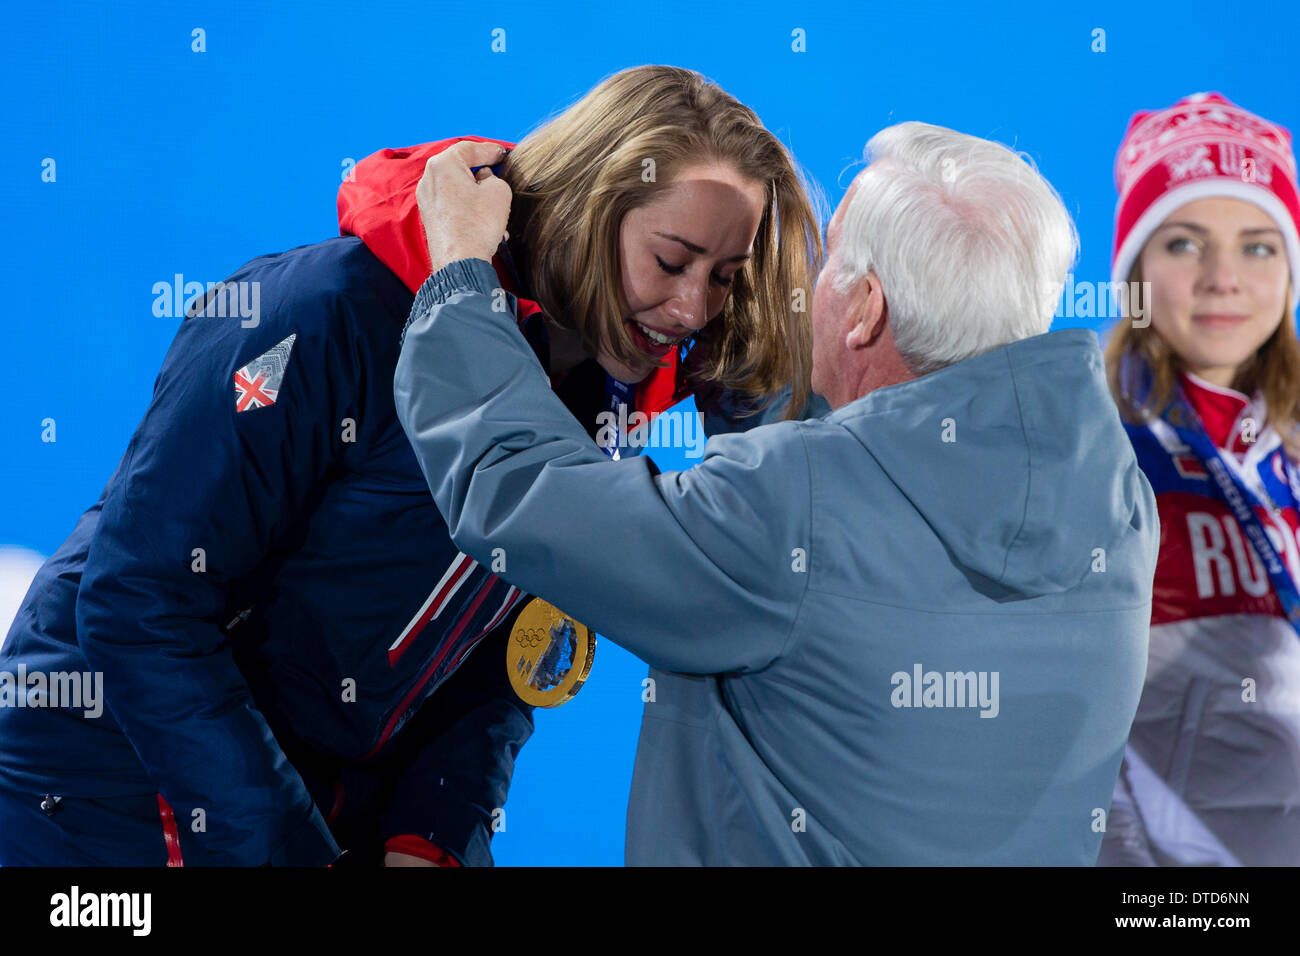 Sochi, Krasnodar Krai, Russia. 15th Feb, 2014. A tearful Lizzy YARNOLD (GBR) receives her Gold medal during the Medal Ceremony for the Women's Skeleton at the Sochi Medals Plaza, Coastal Cluster - XXII Olympic Winter Games Credit:  Action Plus Sports/Alamy Live News - Stock Image